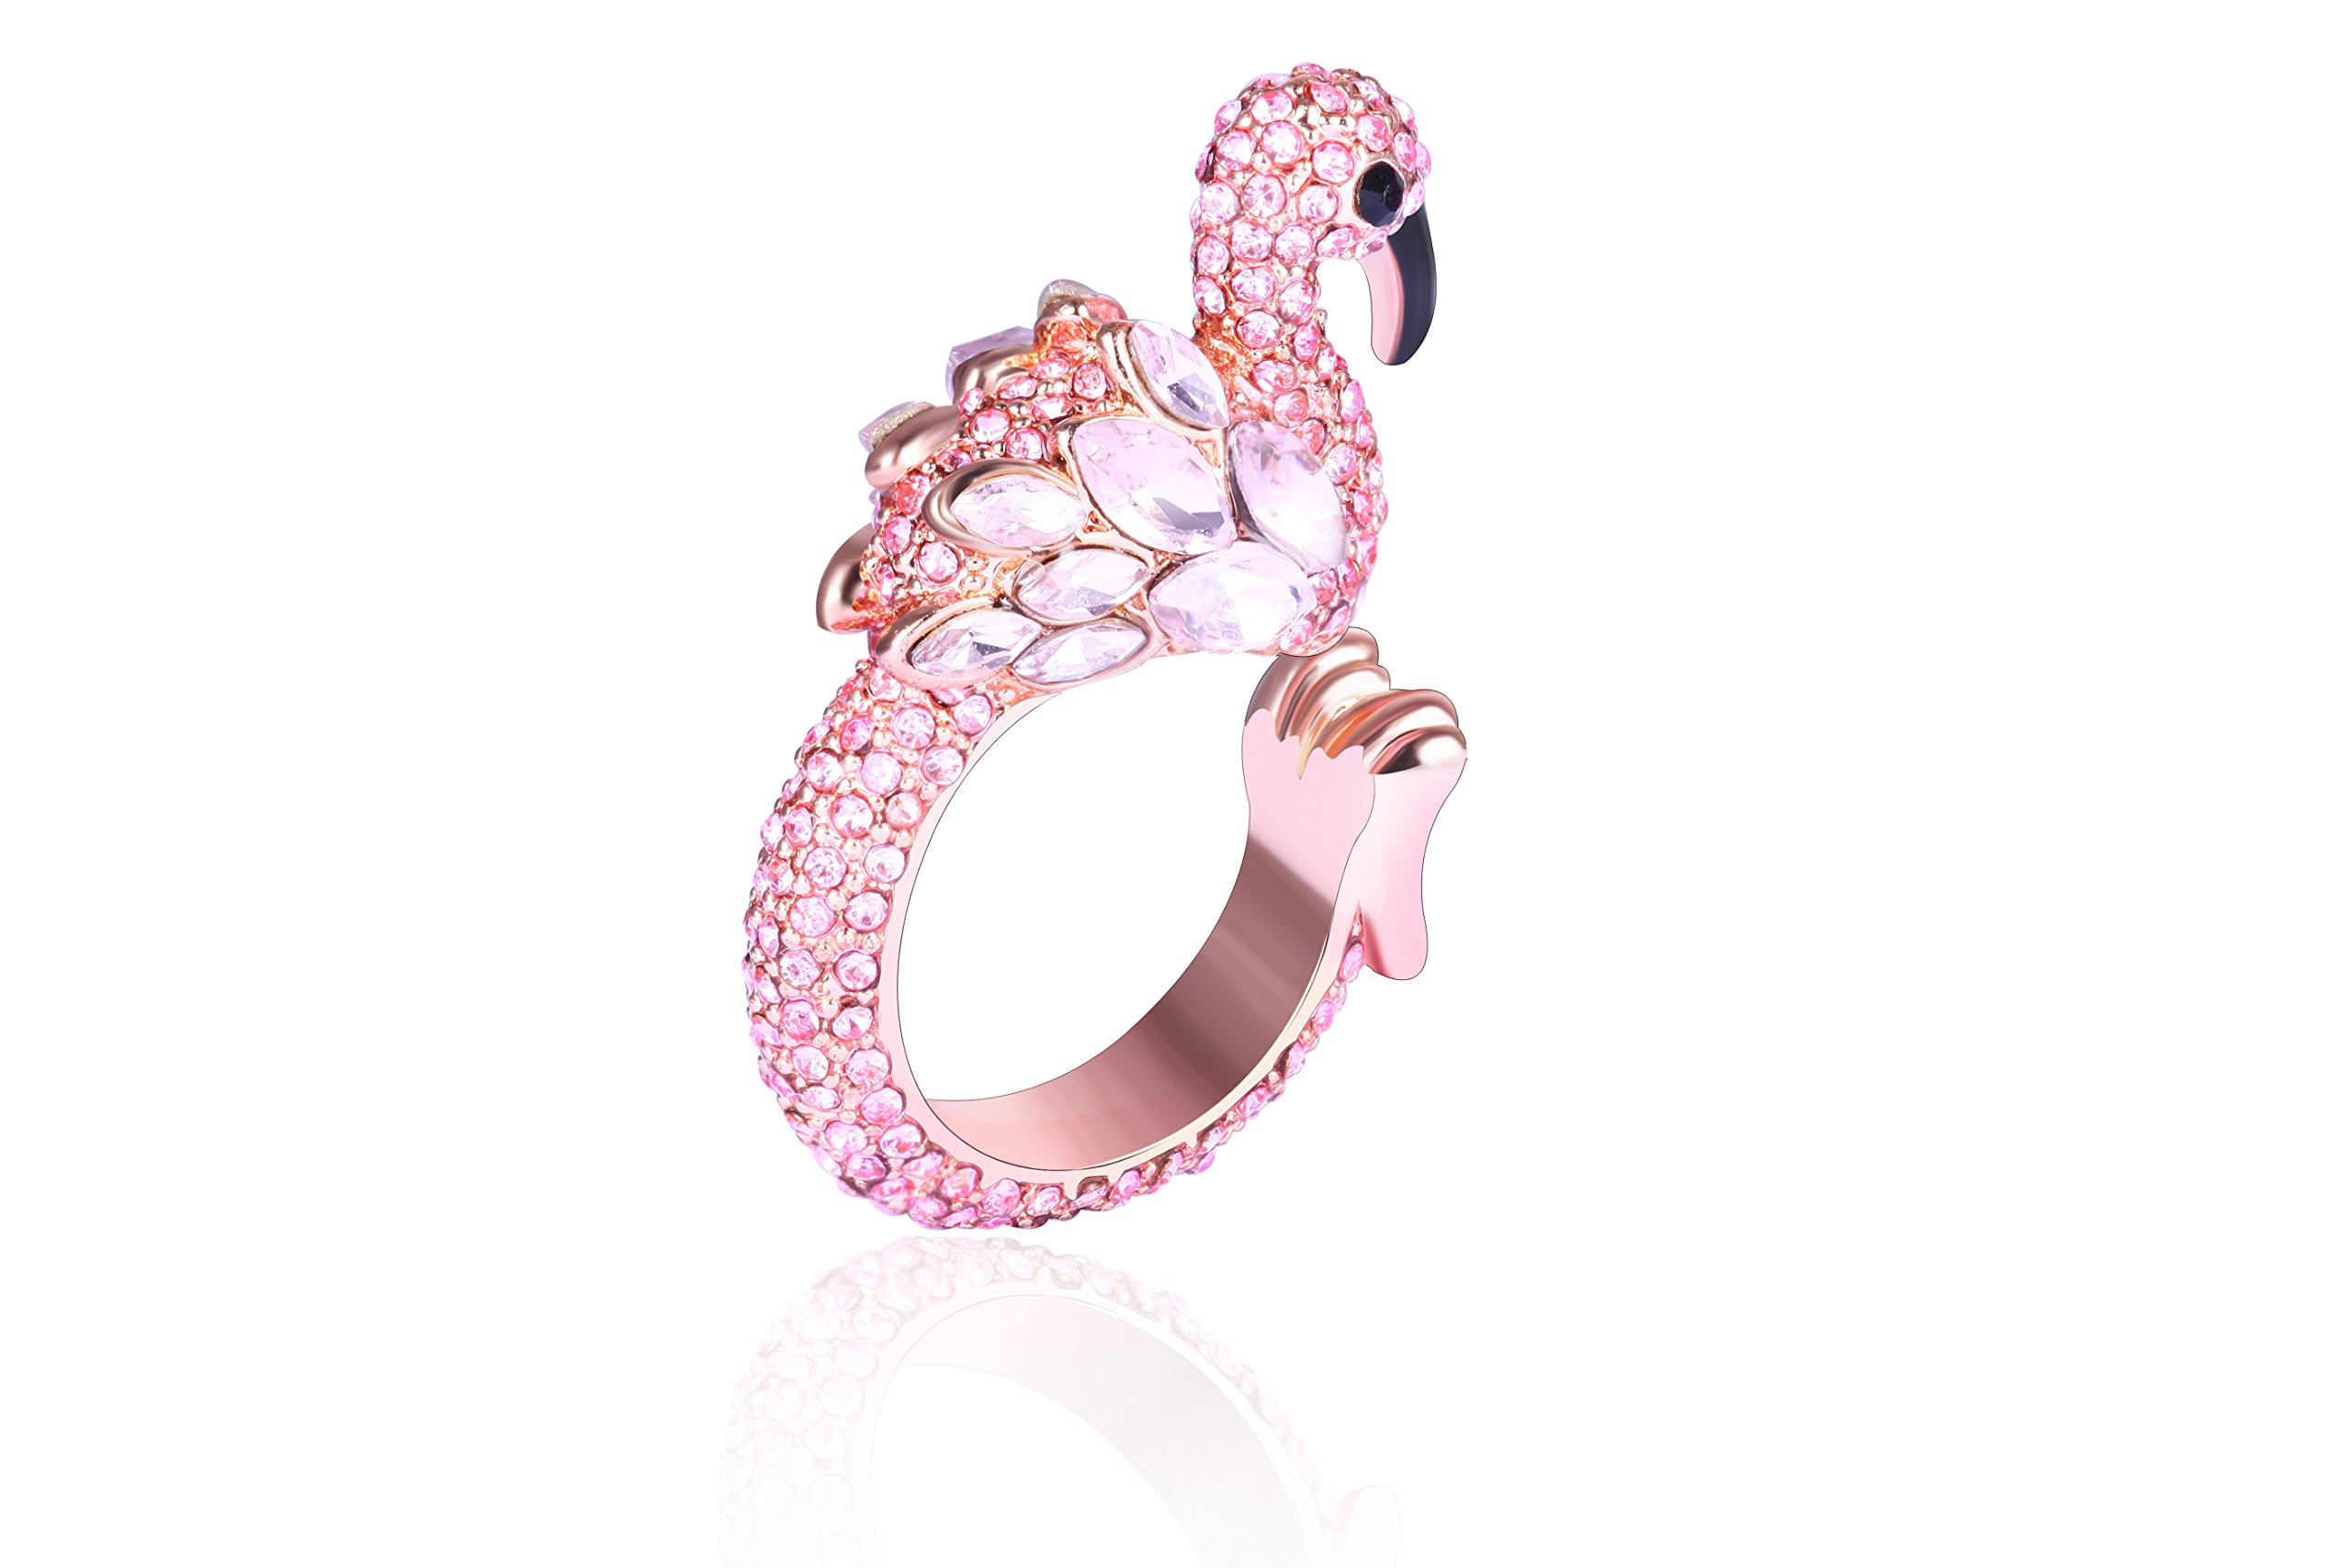 Animal Ring Cute Flamingo for Young Womens Gifts Mom Birthday Teens Girls Party Cuff Statement Ring (Pink) by Paitse (Image #2)